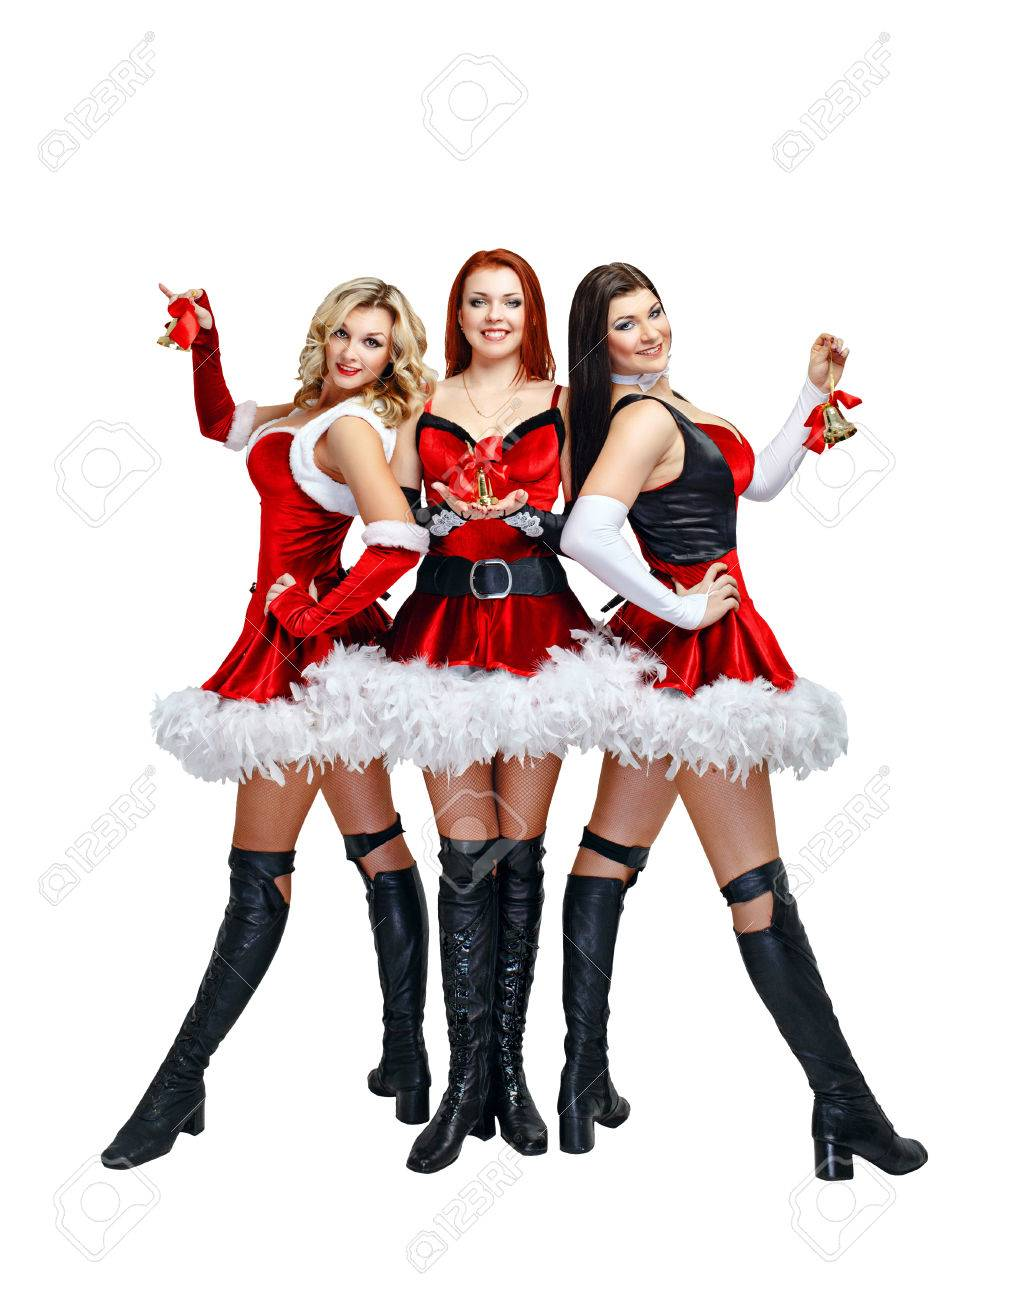 Attractive young womens in carnival costumes and Christmas bells Stock Photo - 24433608  sc 1 st  123RF.com & Attractive Young Womens In Carnival Costumes And Christmas Bells ...